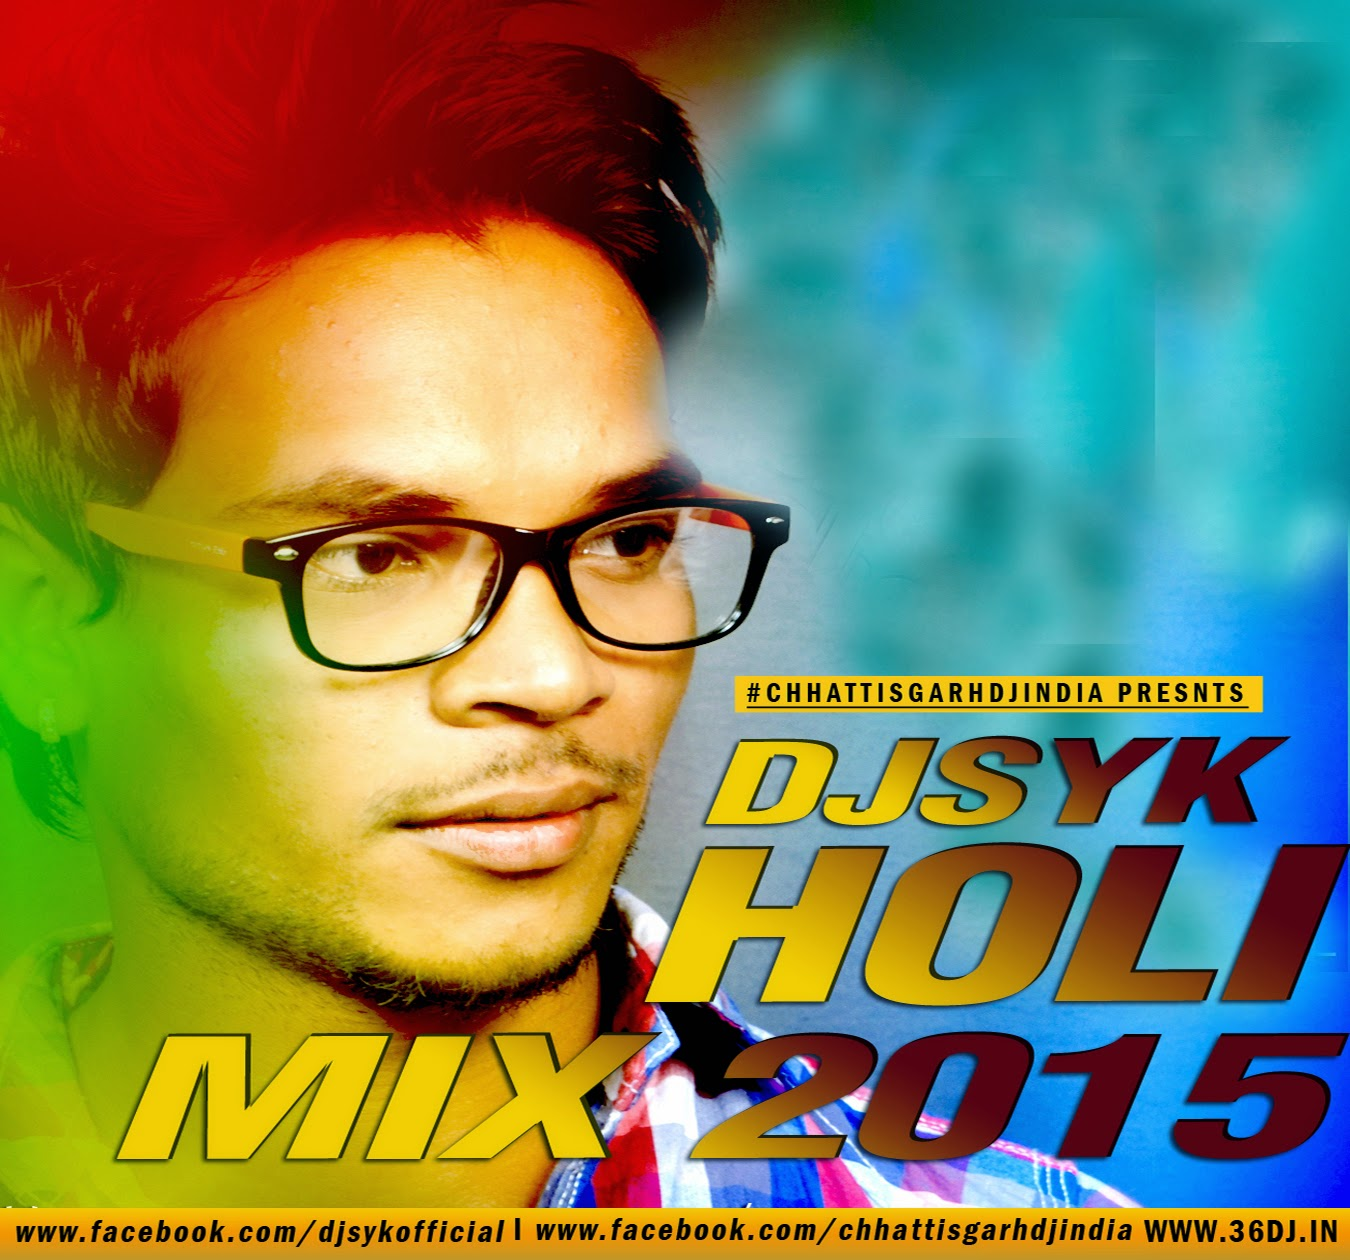 HOLI MIX 2015 - DJ SYK - Syk Music